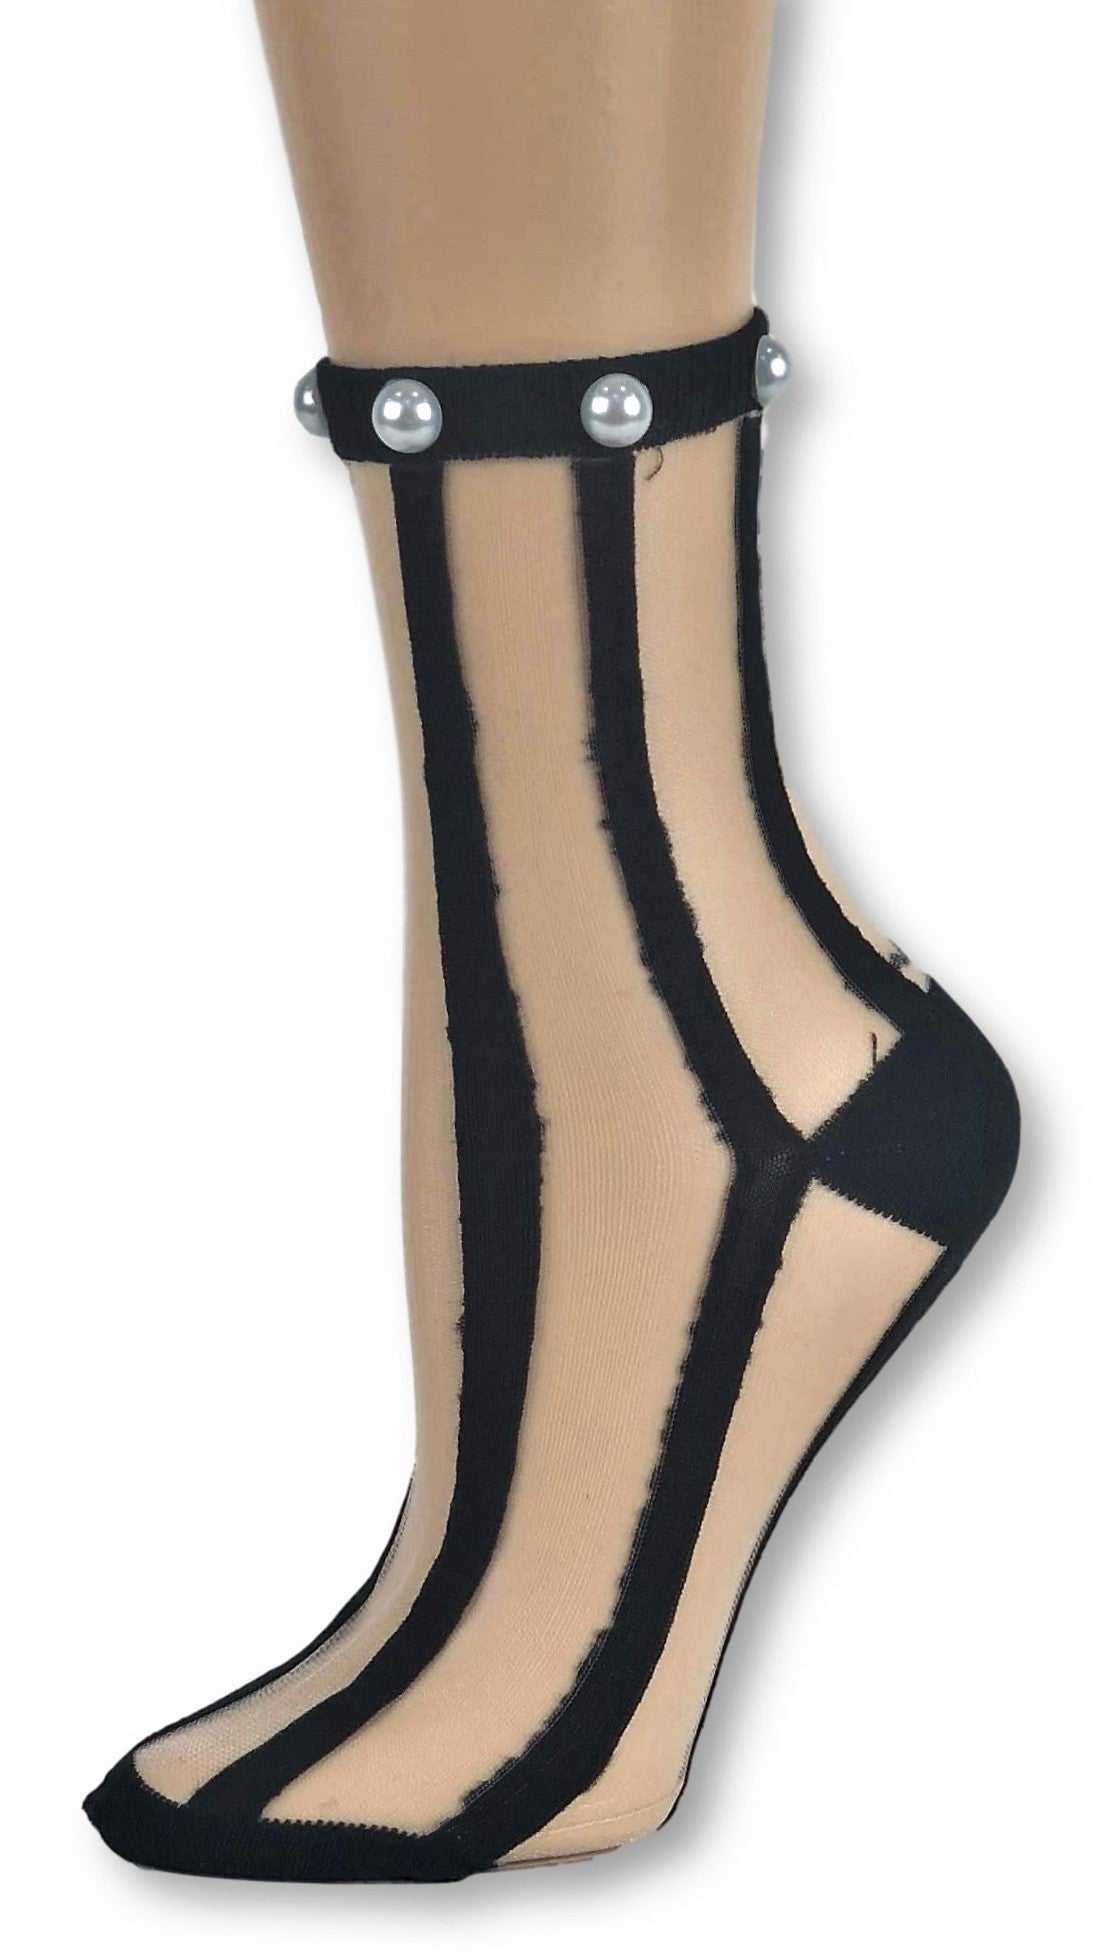 Brunet Black Striped Custom Sheer Socks with beads - Global Trendz Fashion®